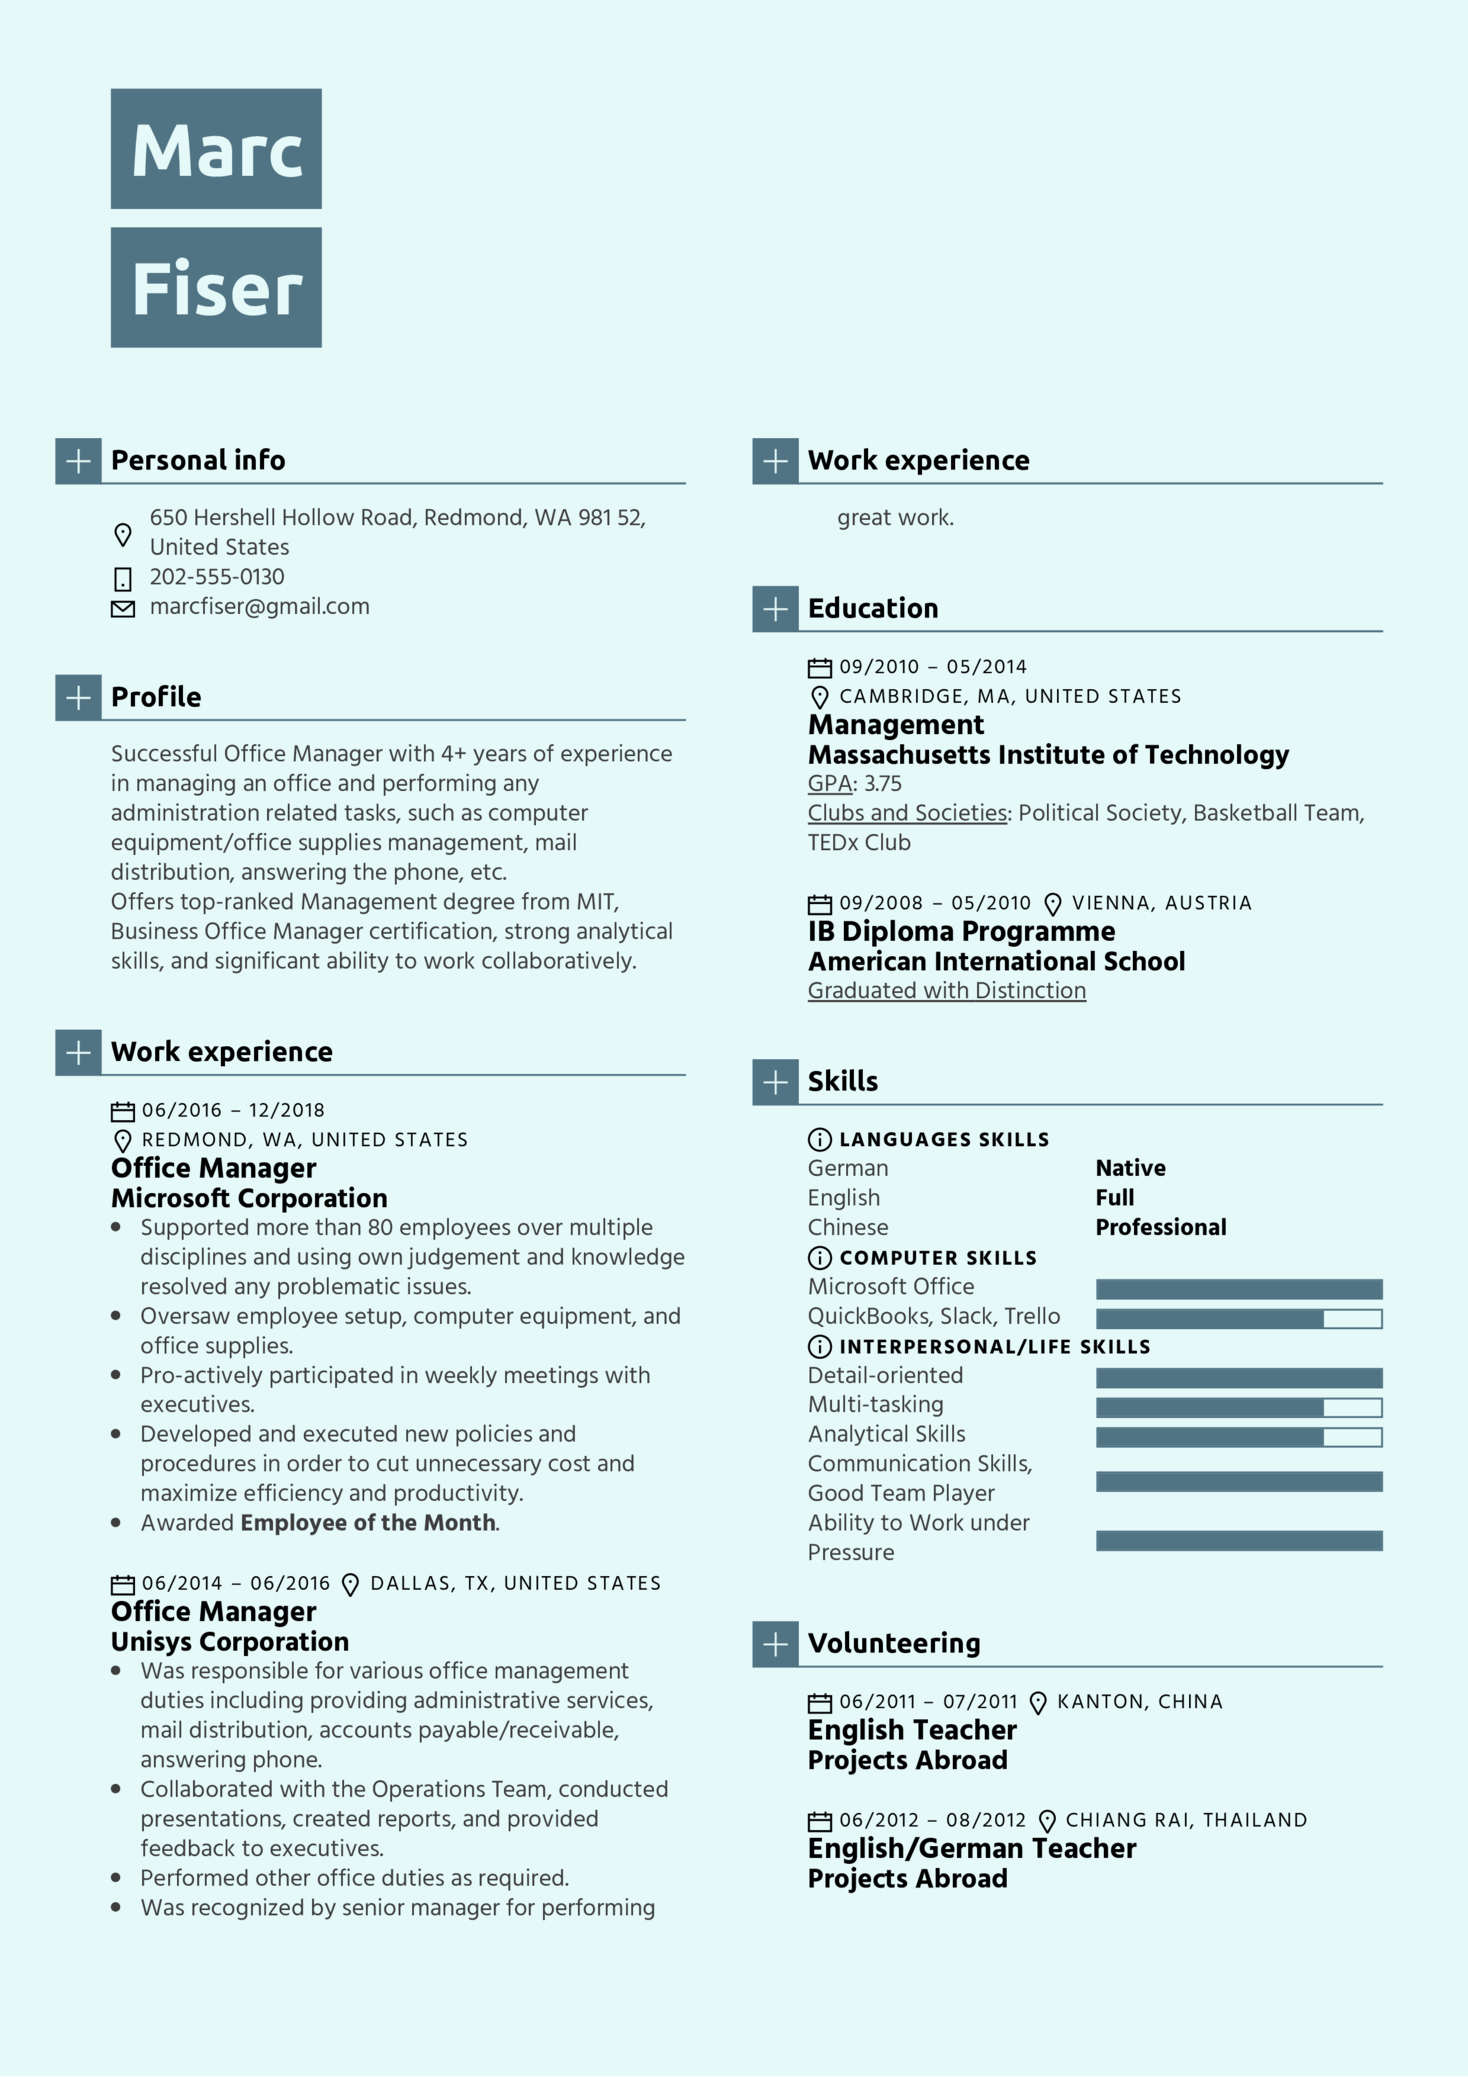 Office Manager Resume Template (parte 1)